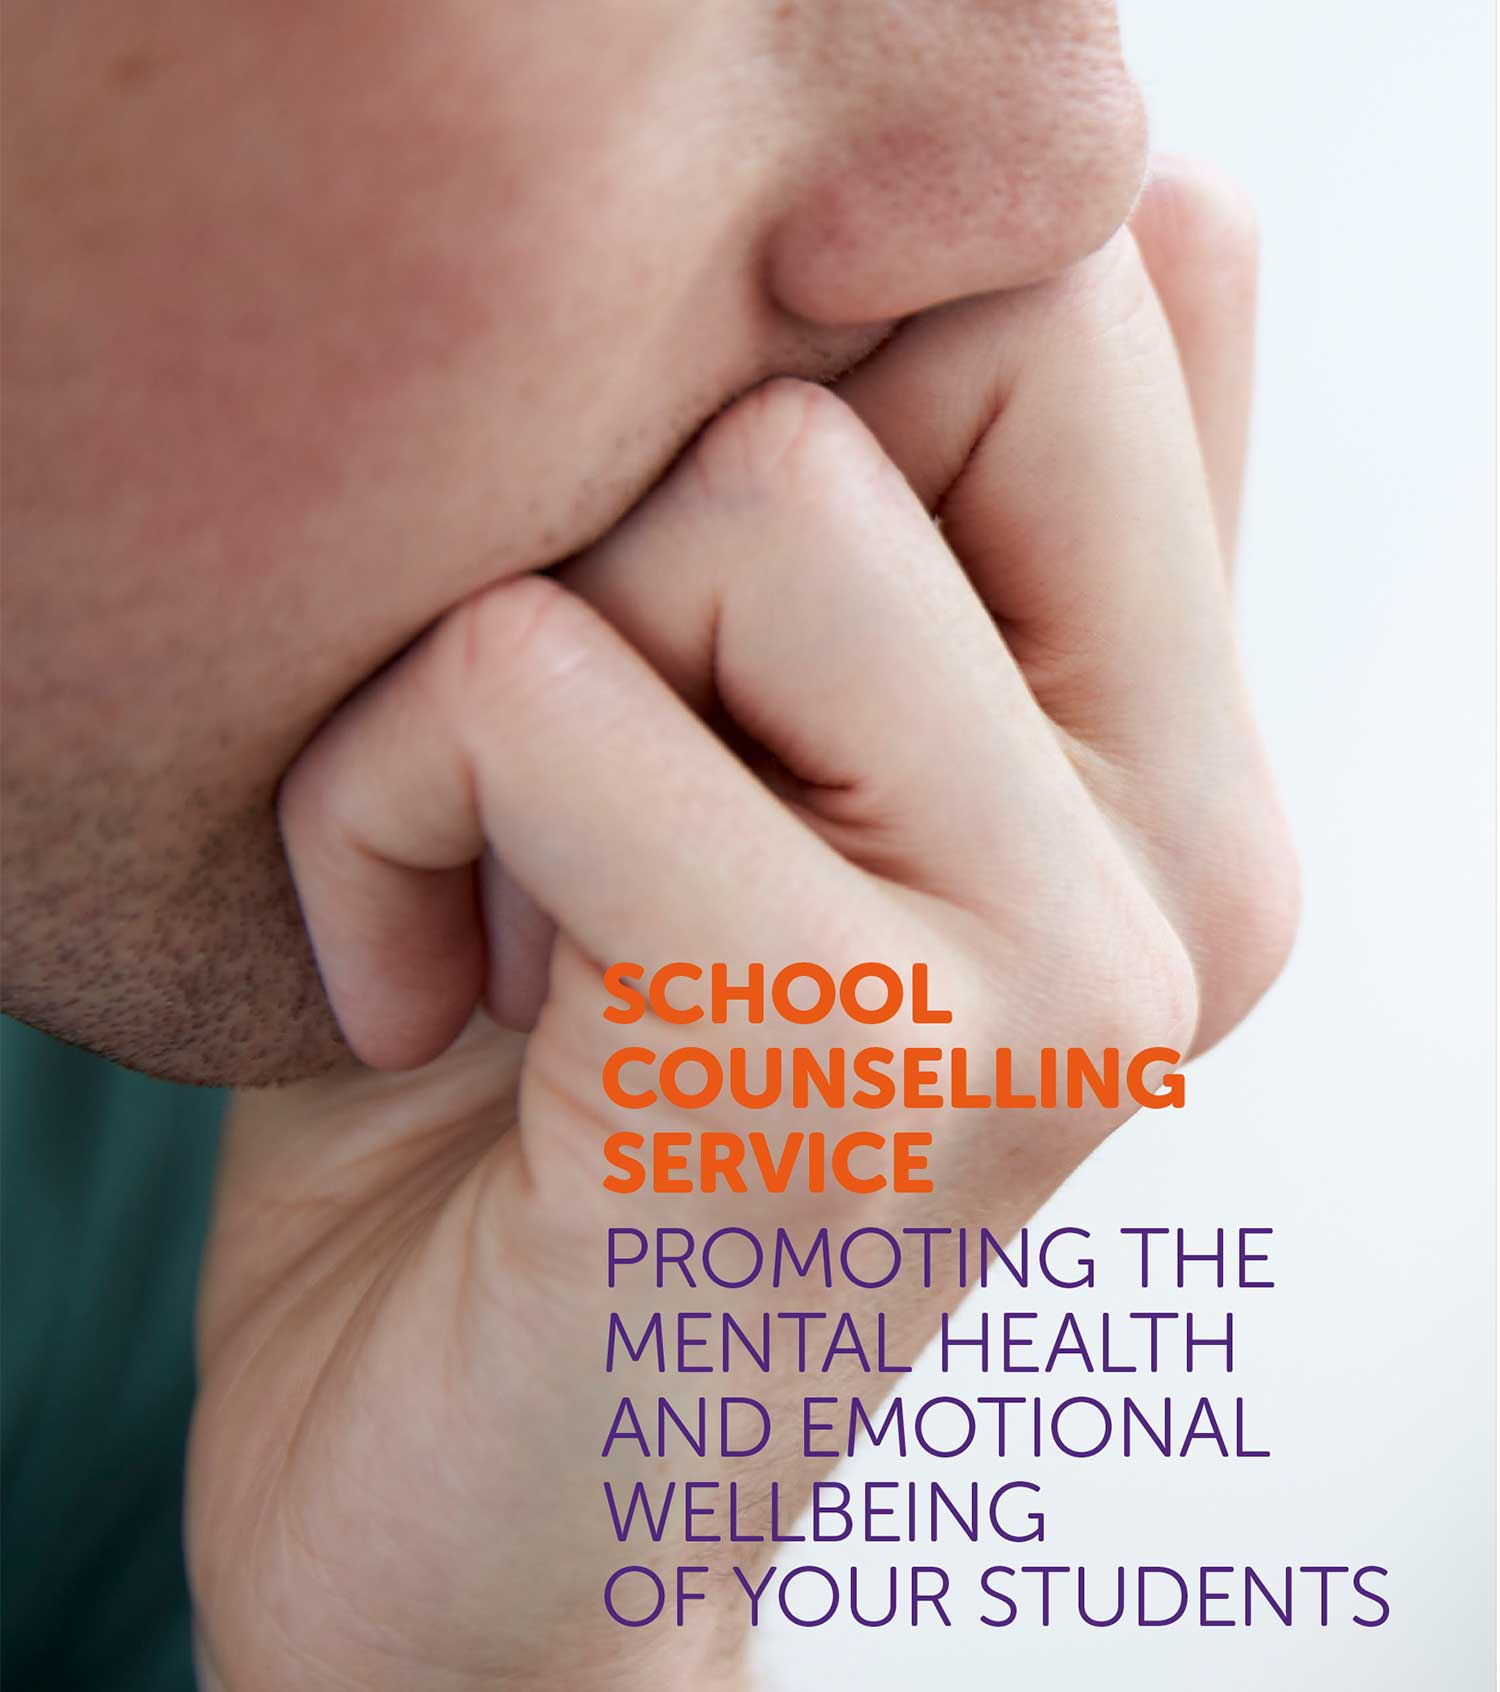 Download our leaflet on counselling for schools.